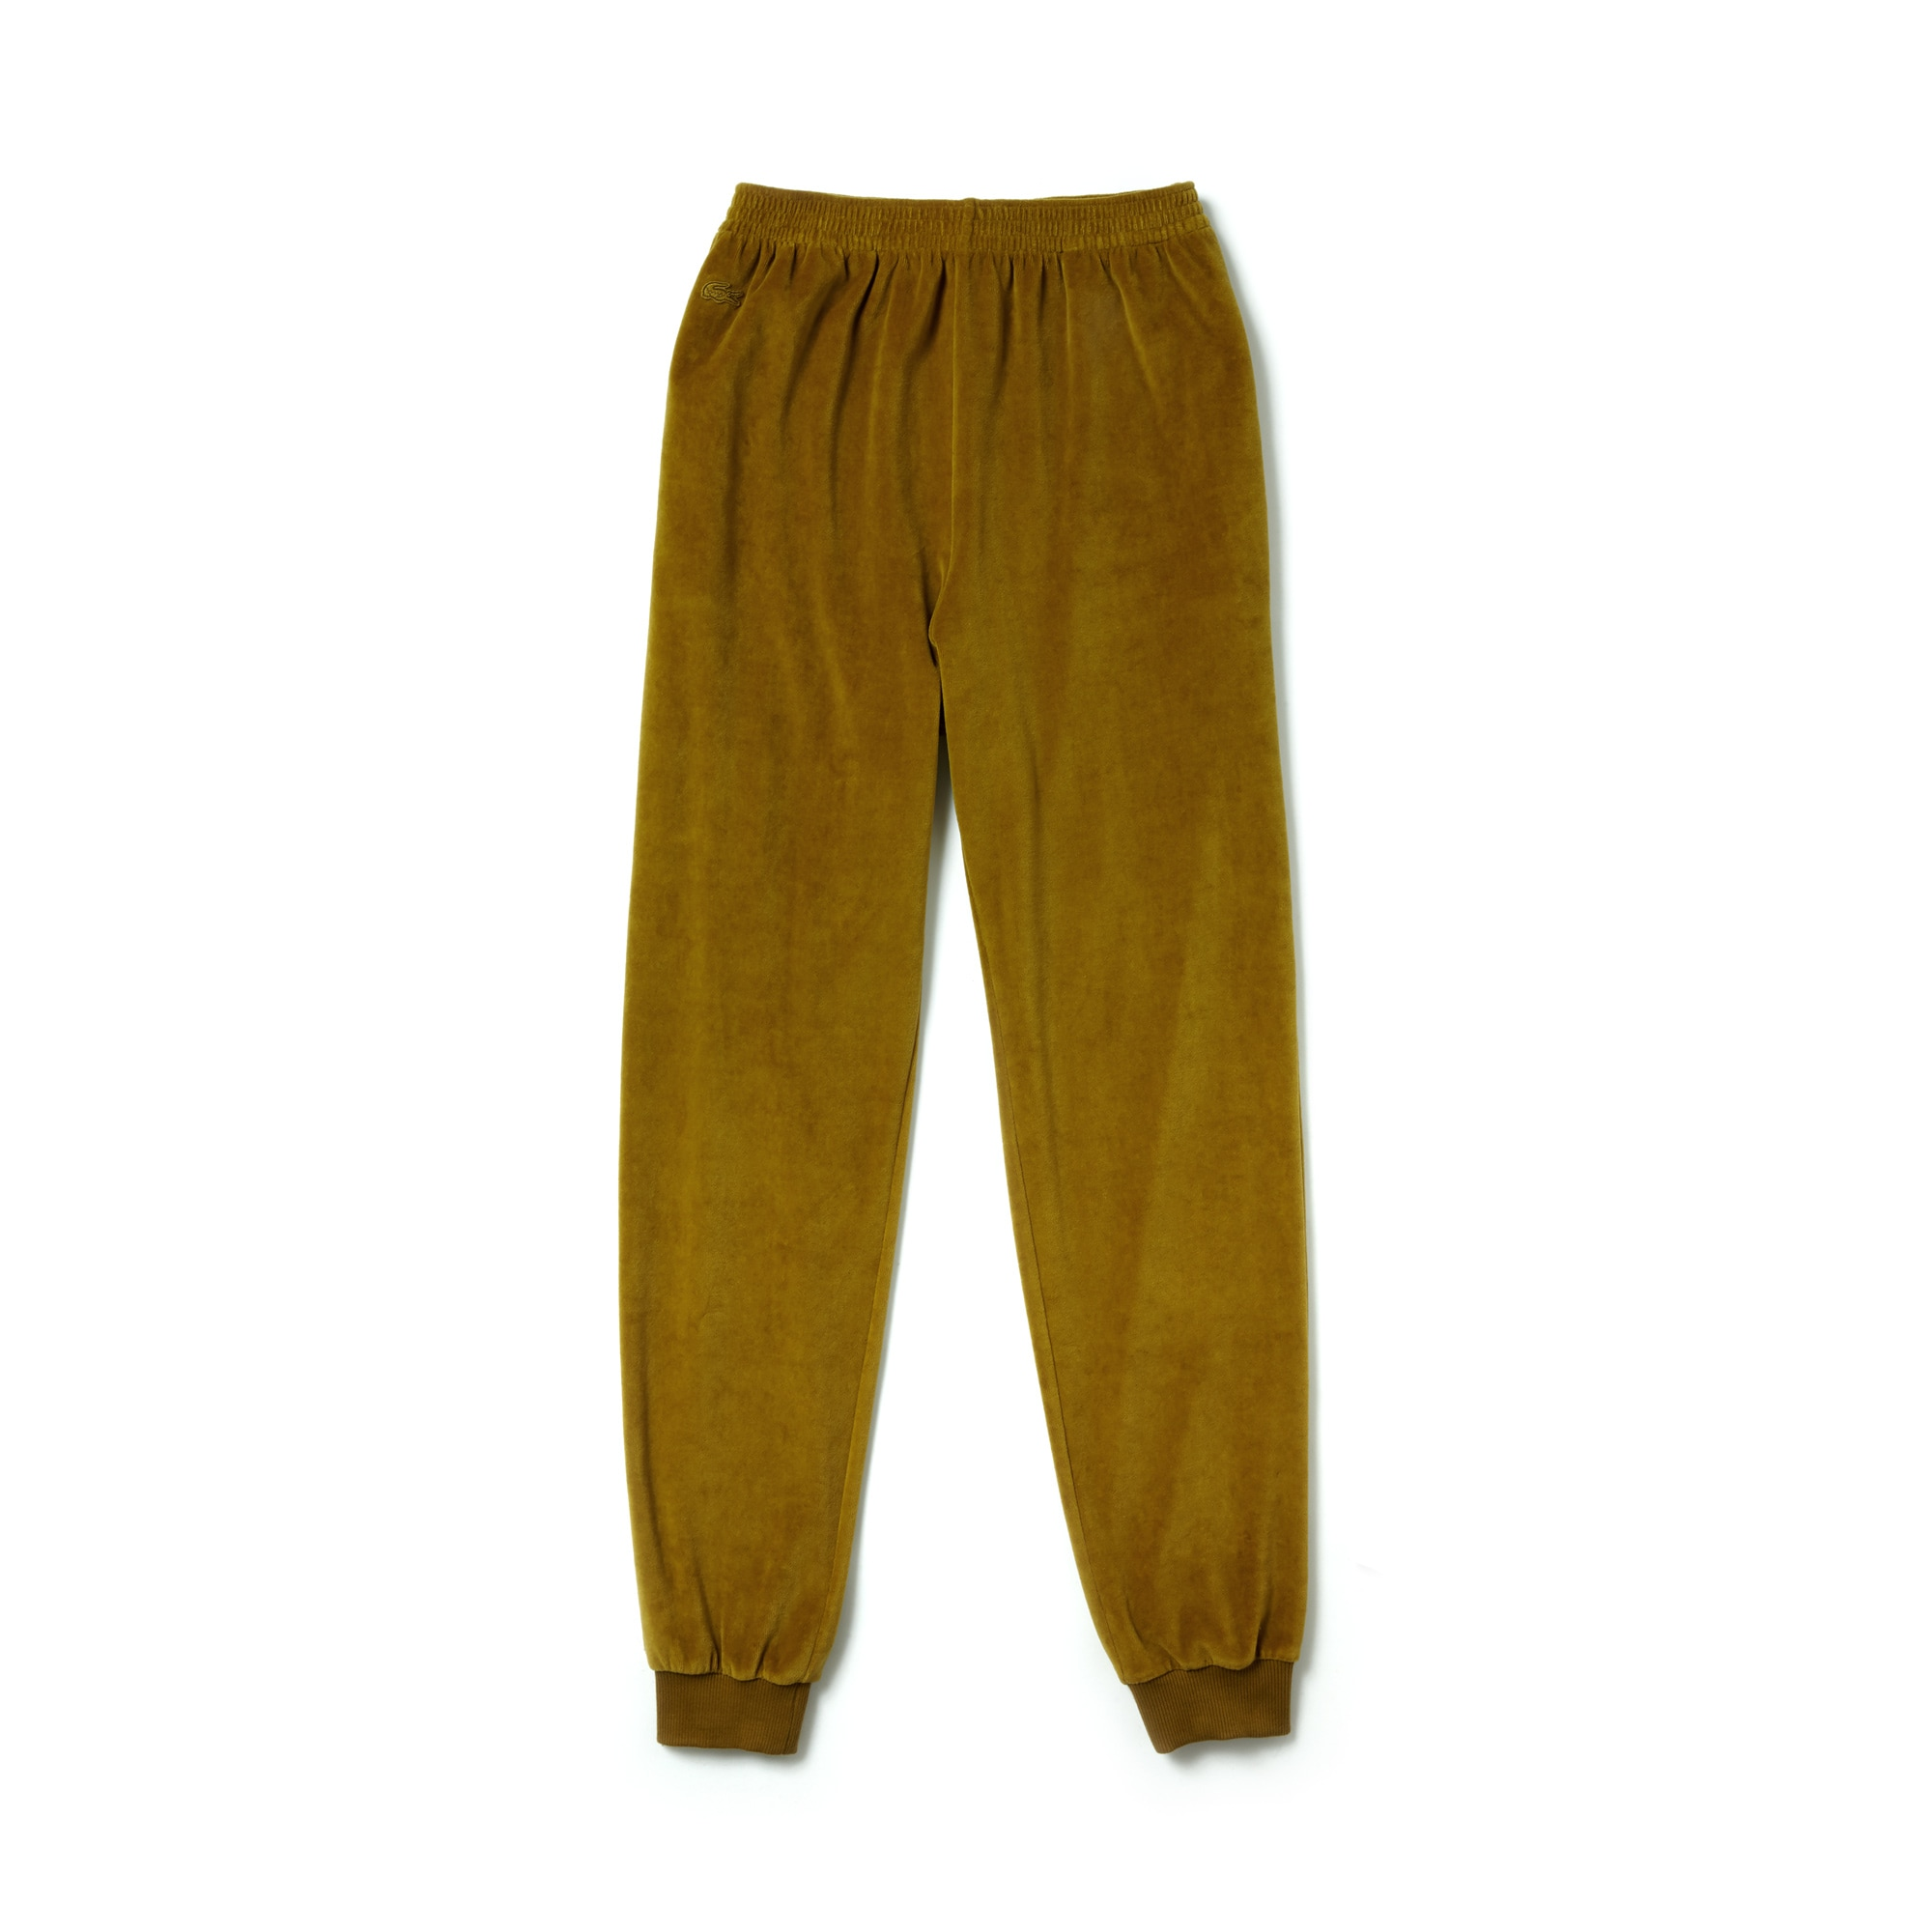 Women's Fashion Show Velour Sweatpants